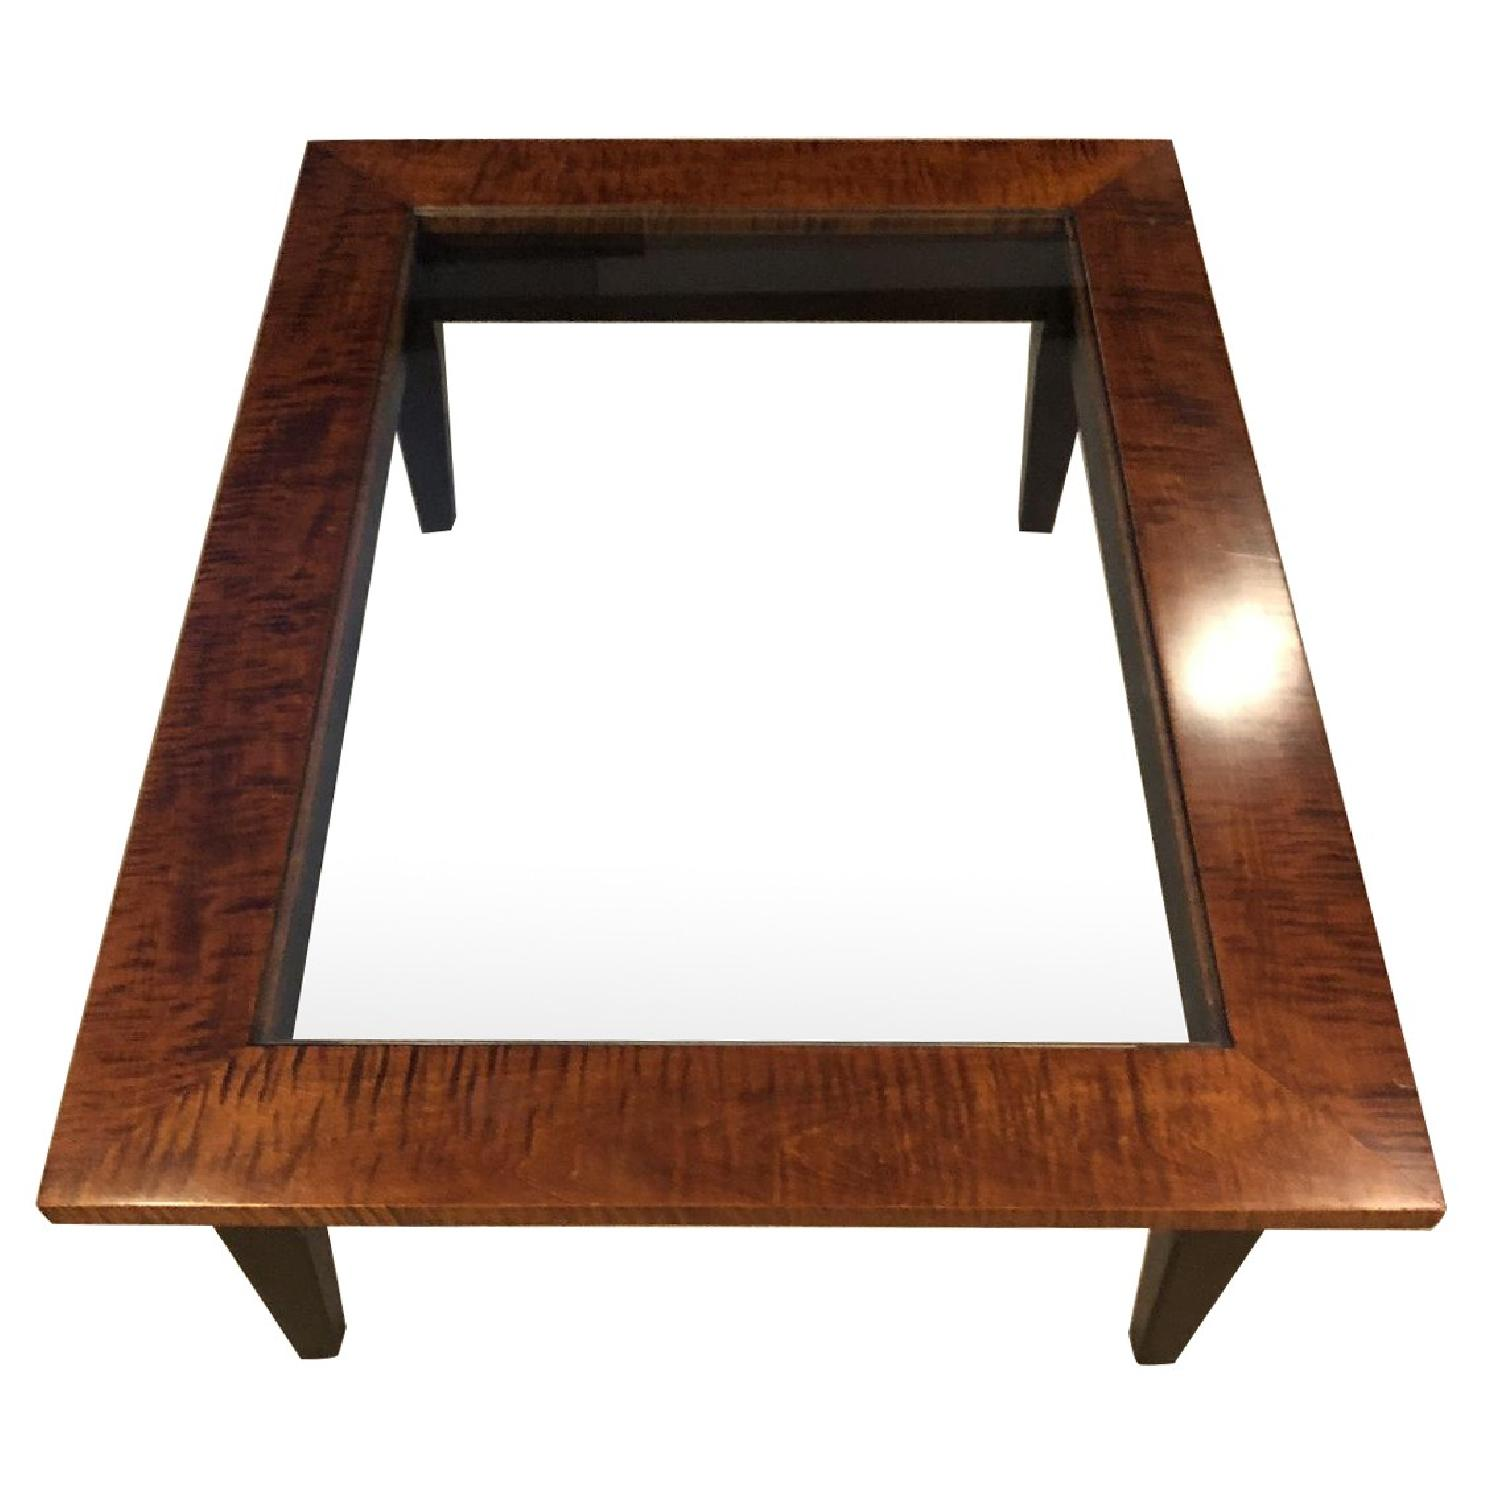 Tiger Maple Glass Coffee Table W Shaker Leg Design AptDeco - Maple and glass coffee table